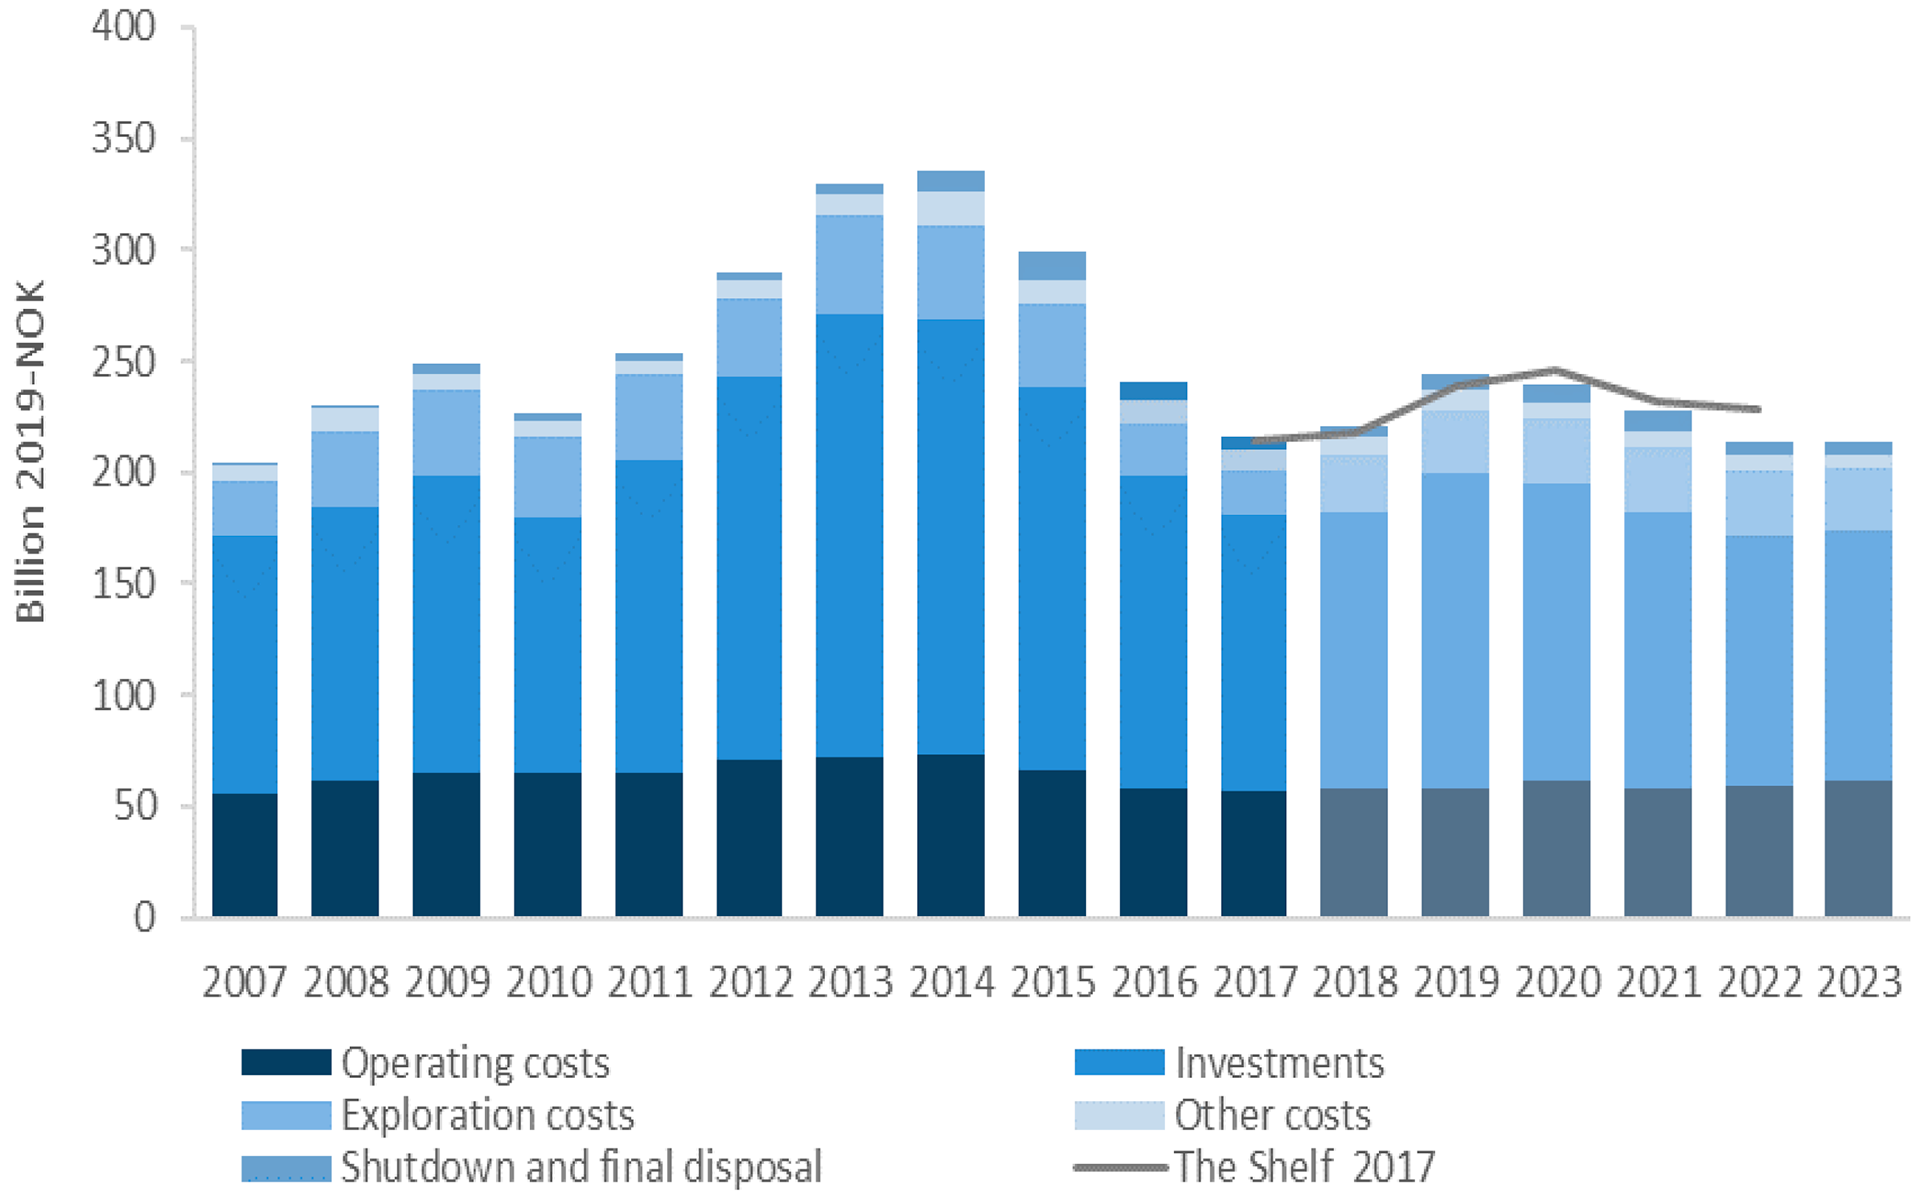 Figure 1-7 Total costs – forecast for 2018-2023